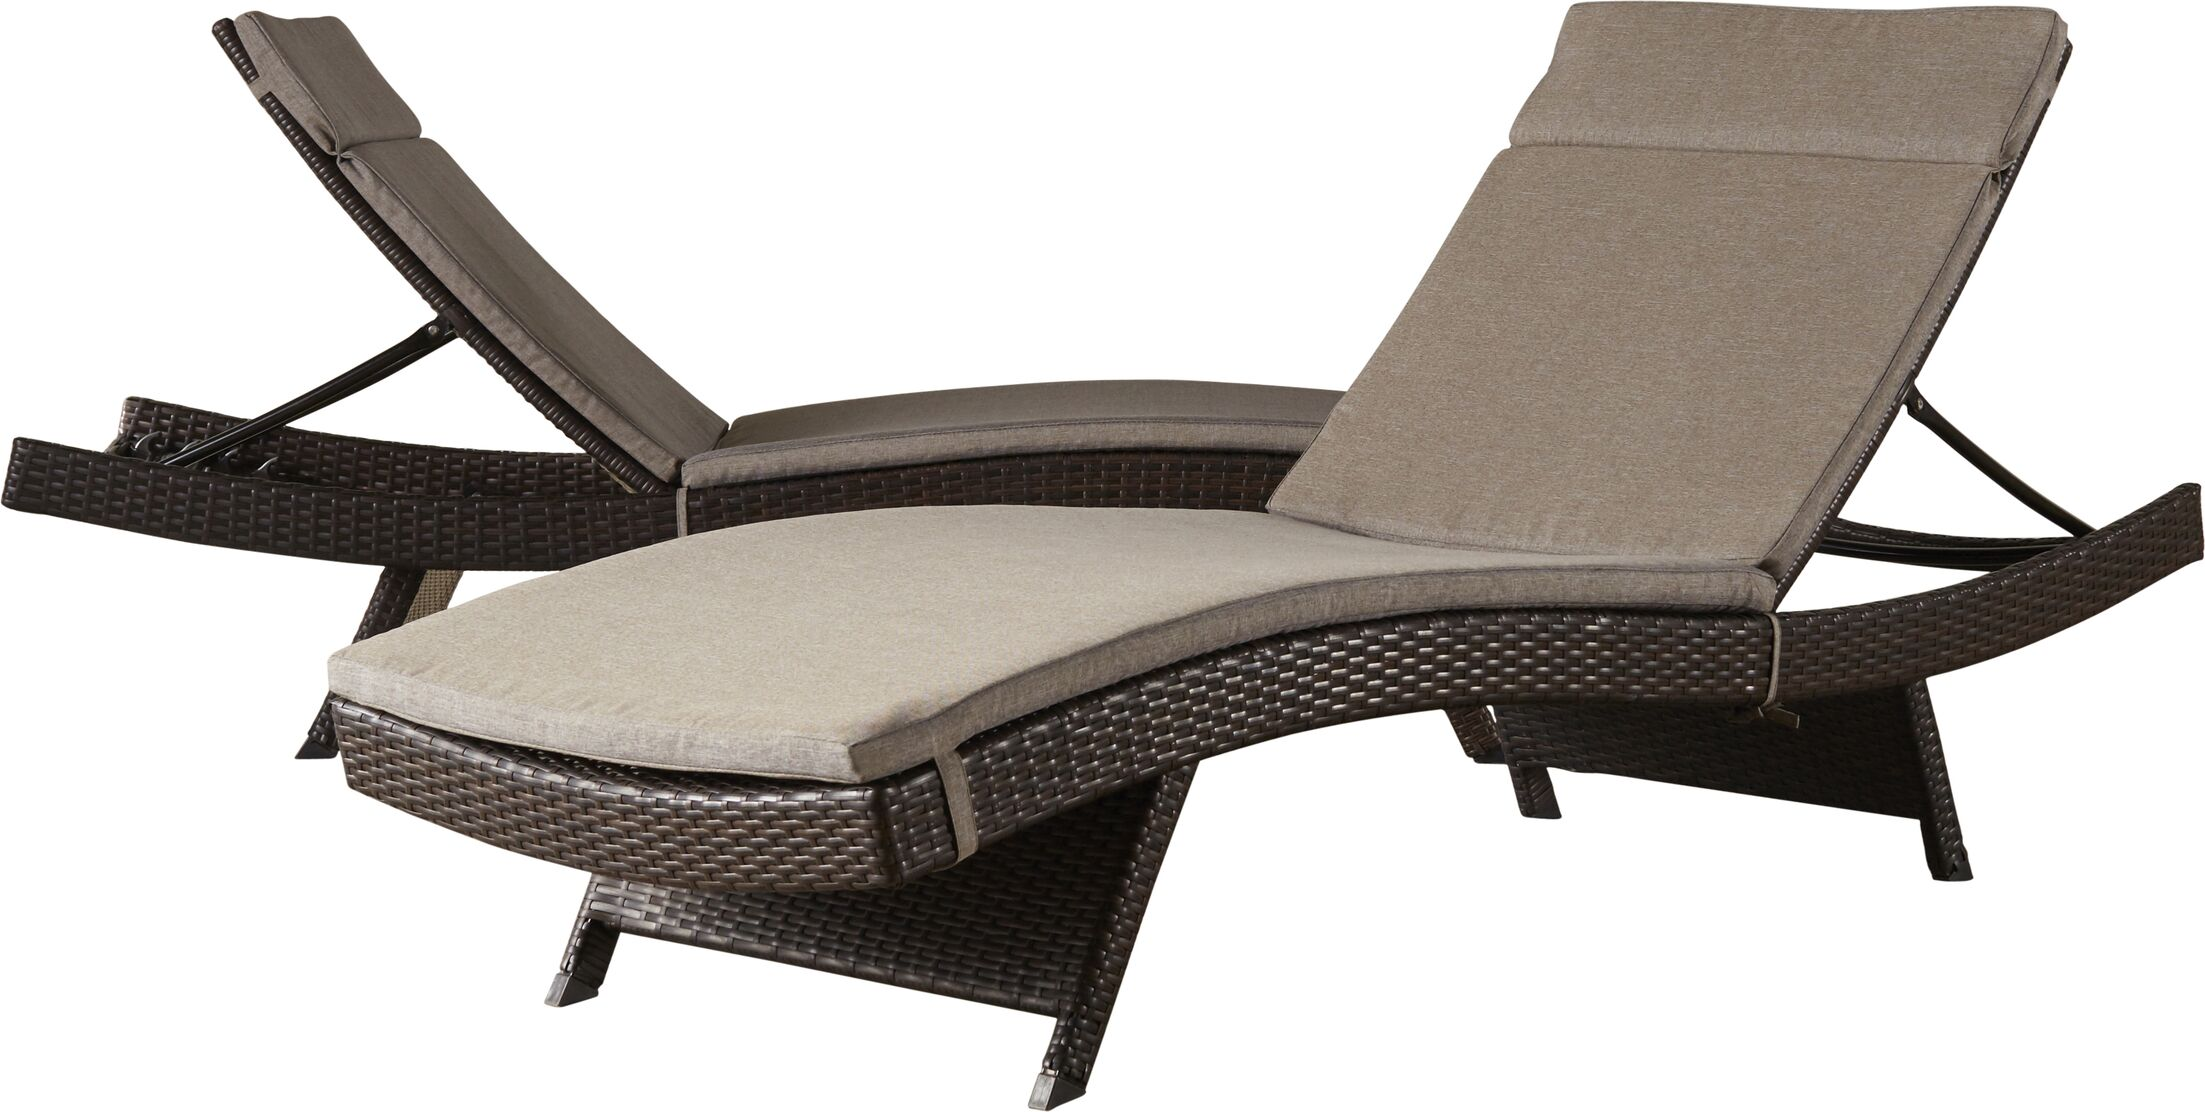 Ferrara Reclining Chaise Lounge with Cushion Color: Charcoal